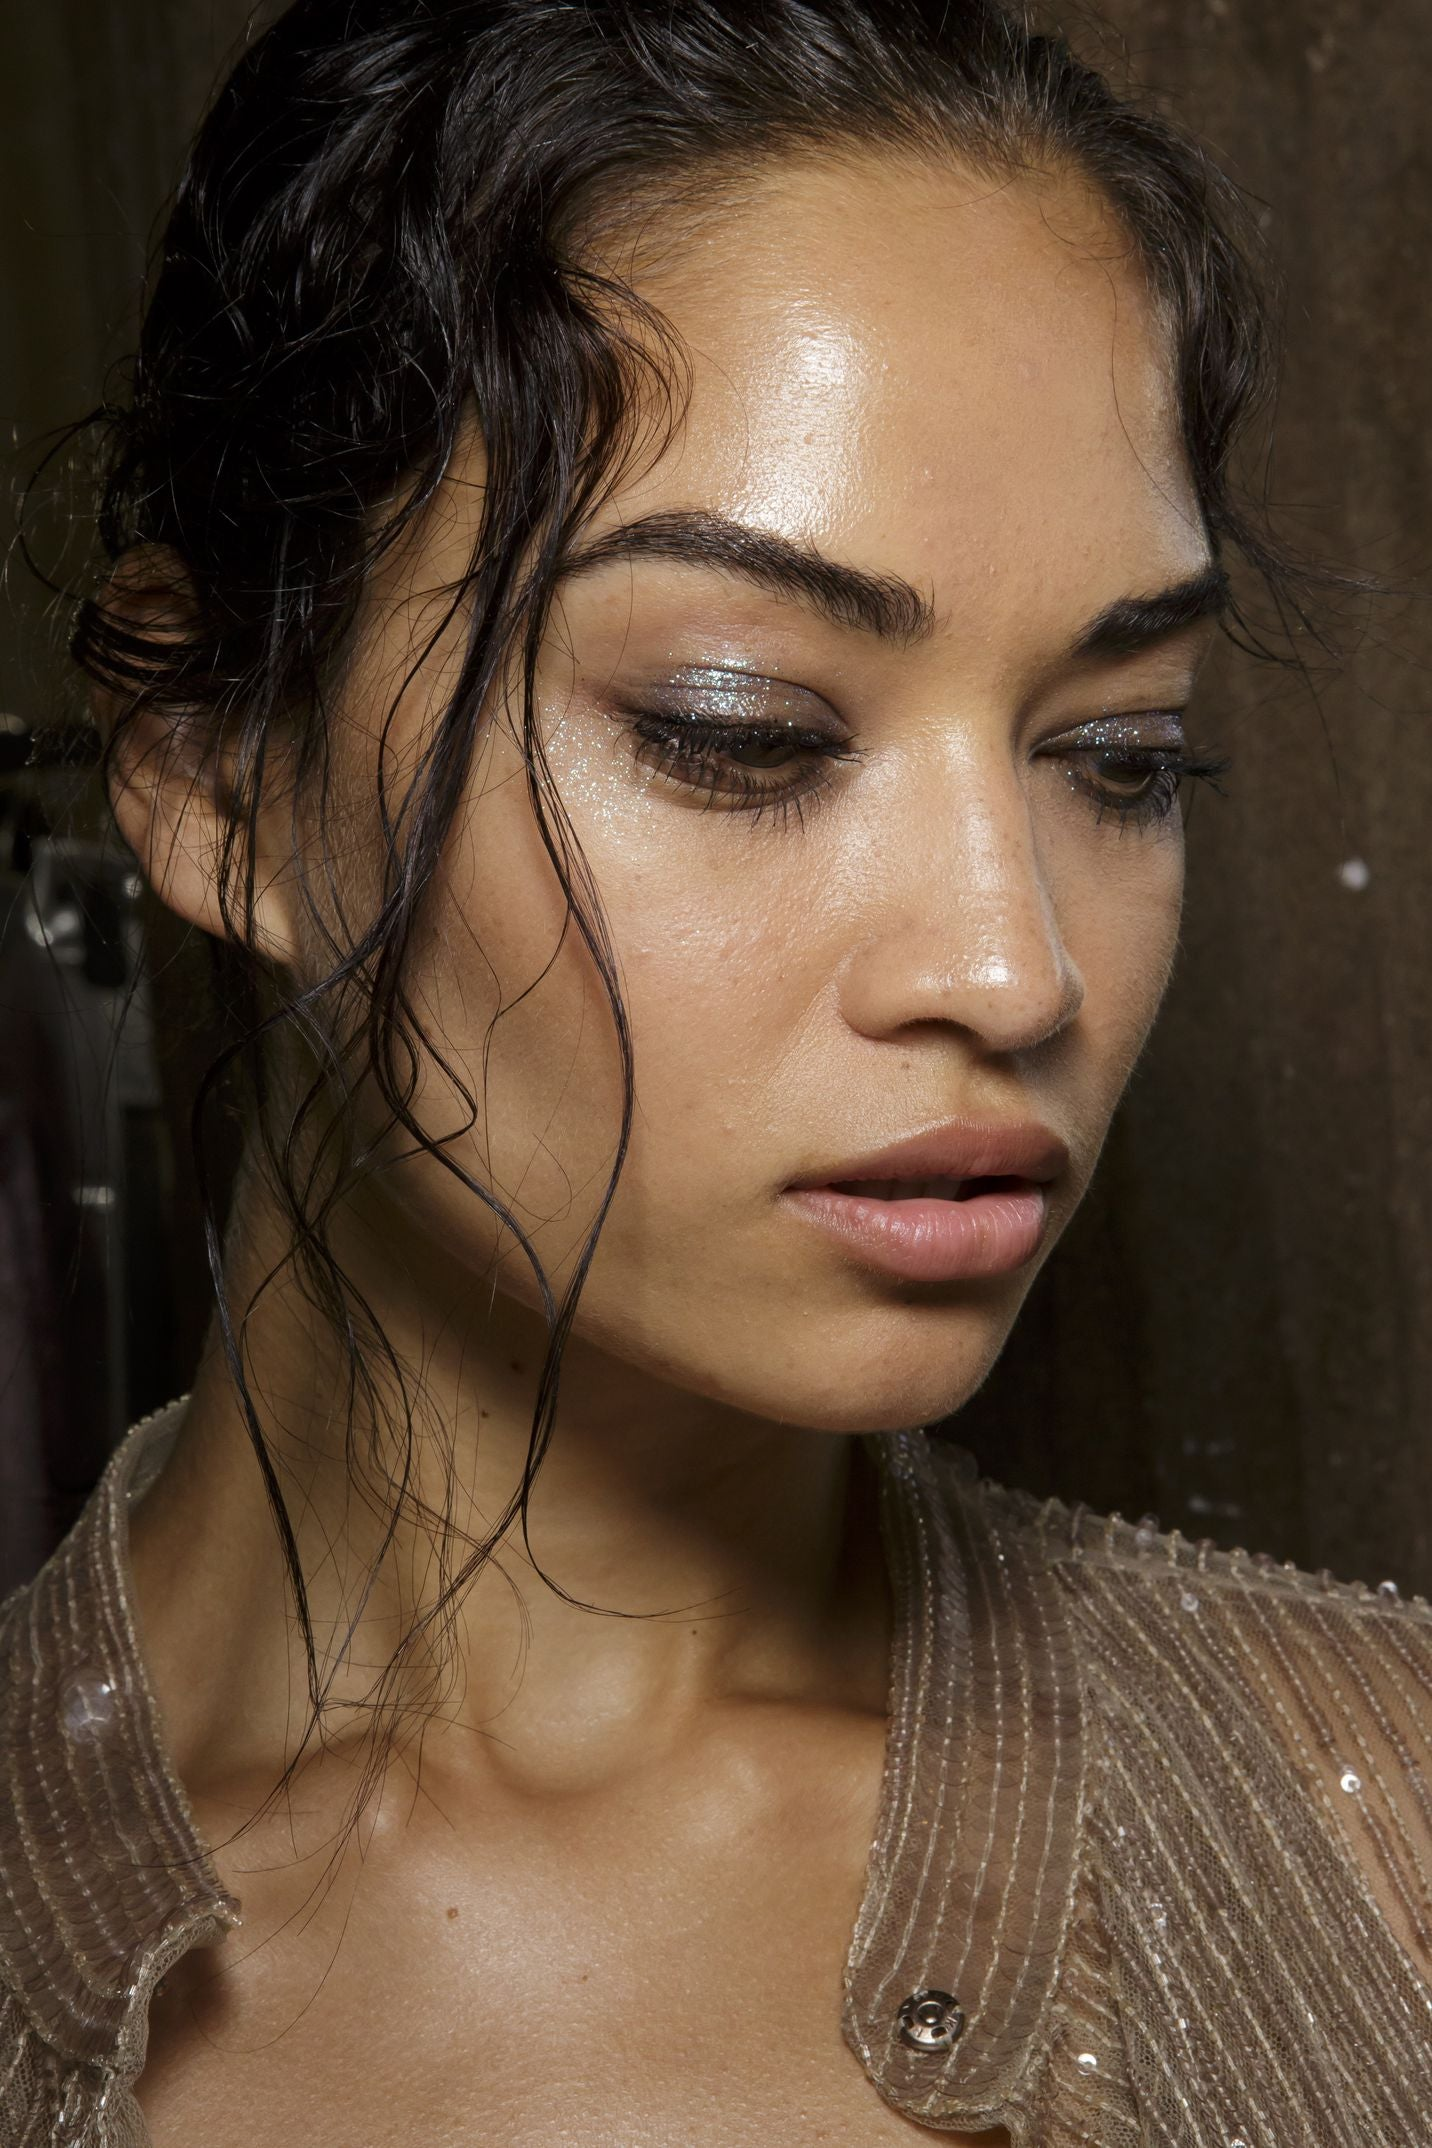 Dewy Skin Top Beauty Trends